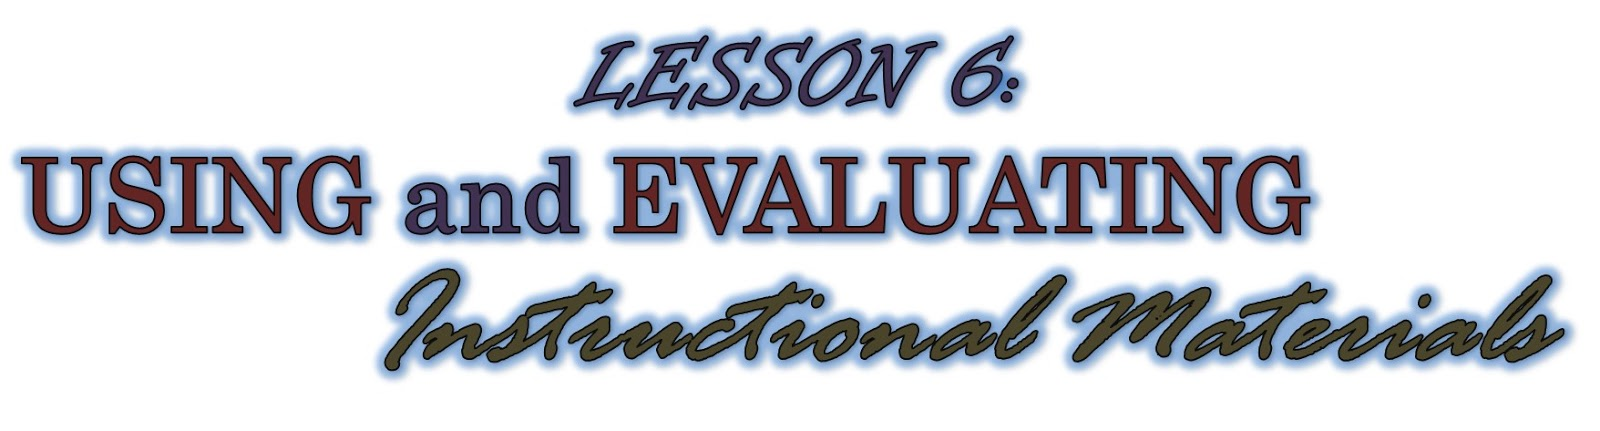 Theas Educational Technology Blog Lesson 6 Using And Evaluating